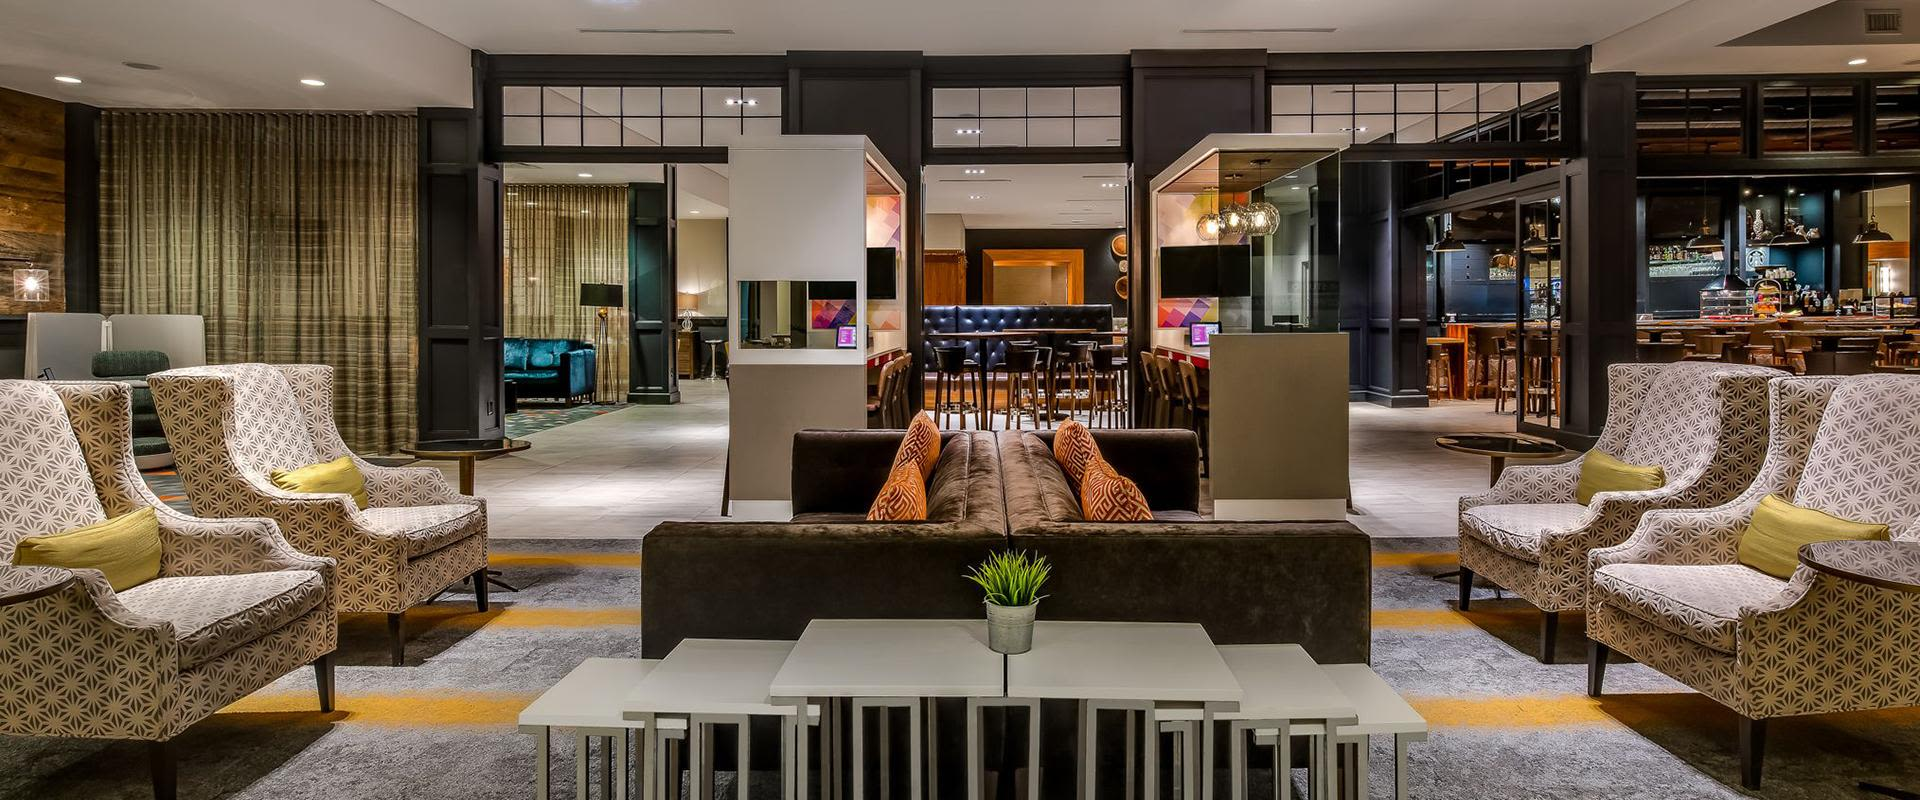 Charlotte Hotel Lobby Lounge Seating Area